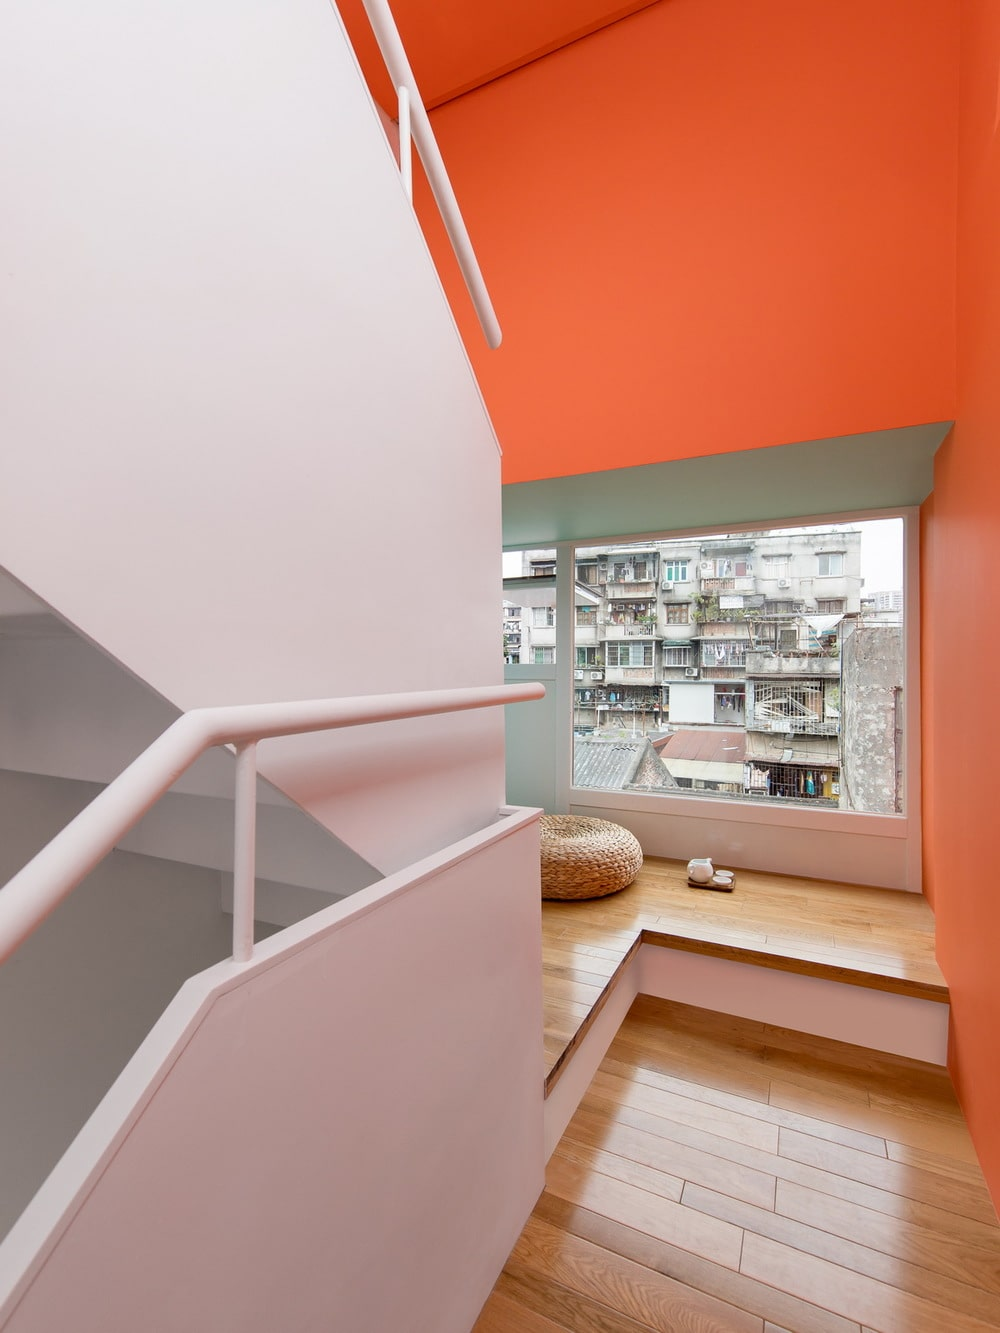 This is a close look at a stairs landing with a reading nook by the window.